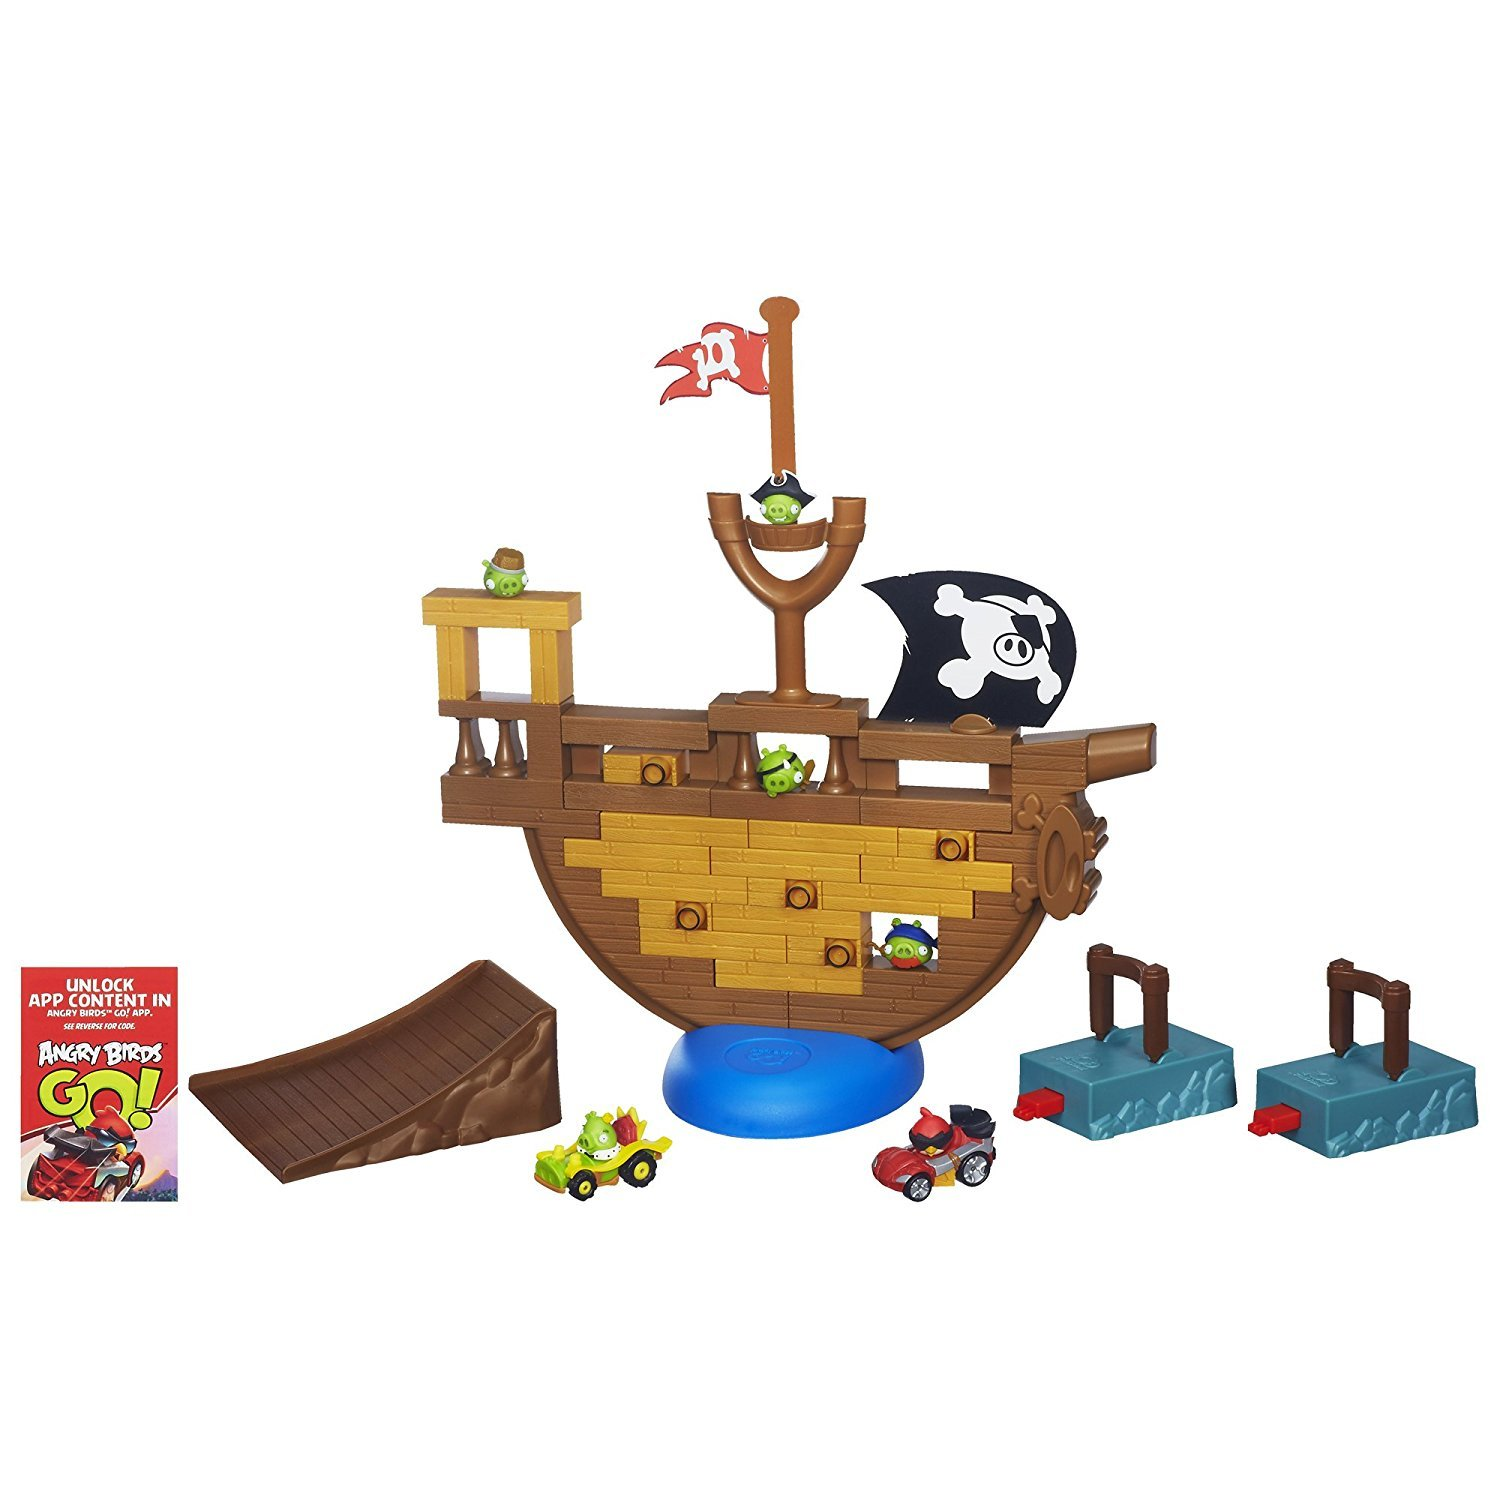 【60%OFF】 Angry Birds Go! [並行輸入品] Jenga Angry Pirate Pig Go! Attack Game [並行輸入品] B074THRN7V, アジアンセレクト POKHARA:e83c2899 --- trainersnit-com.access.secure-ssl-servers.info